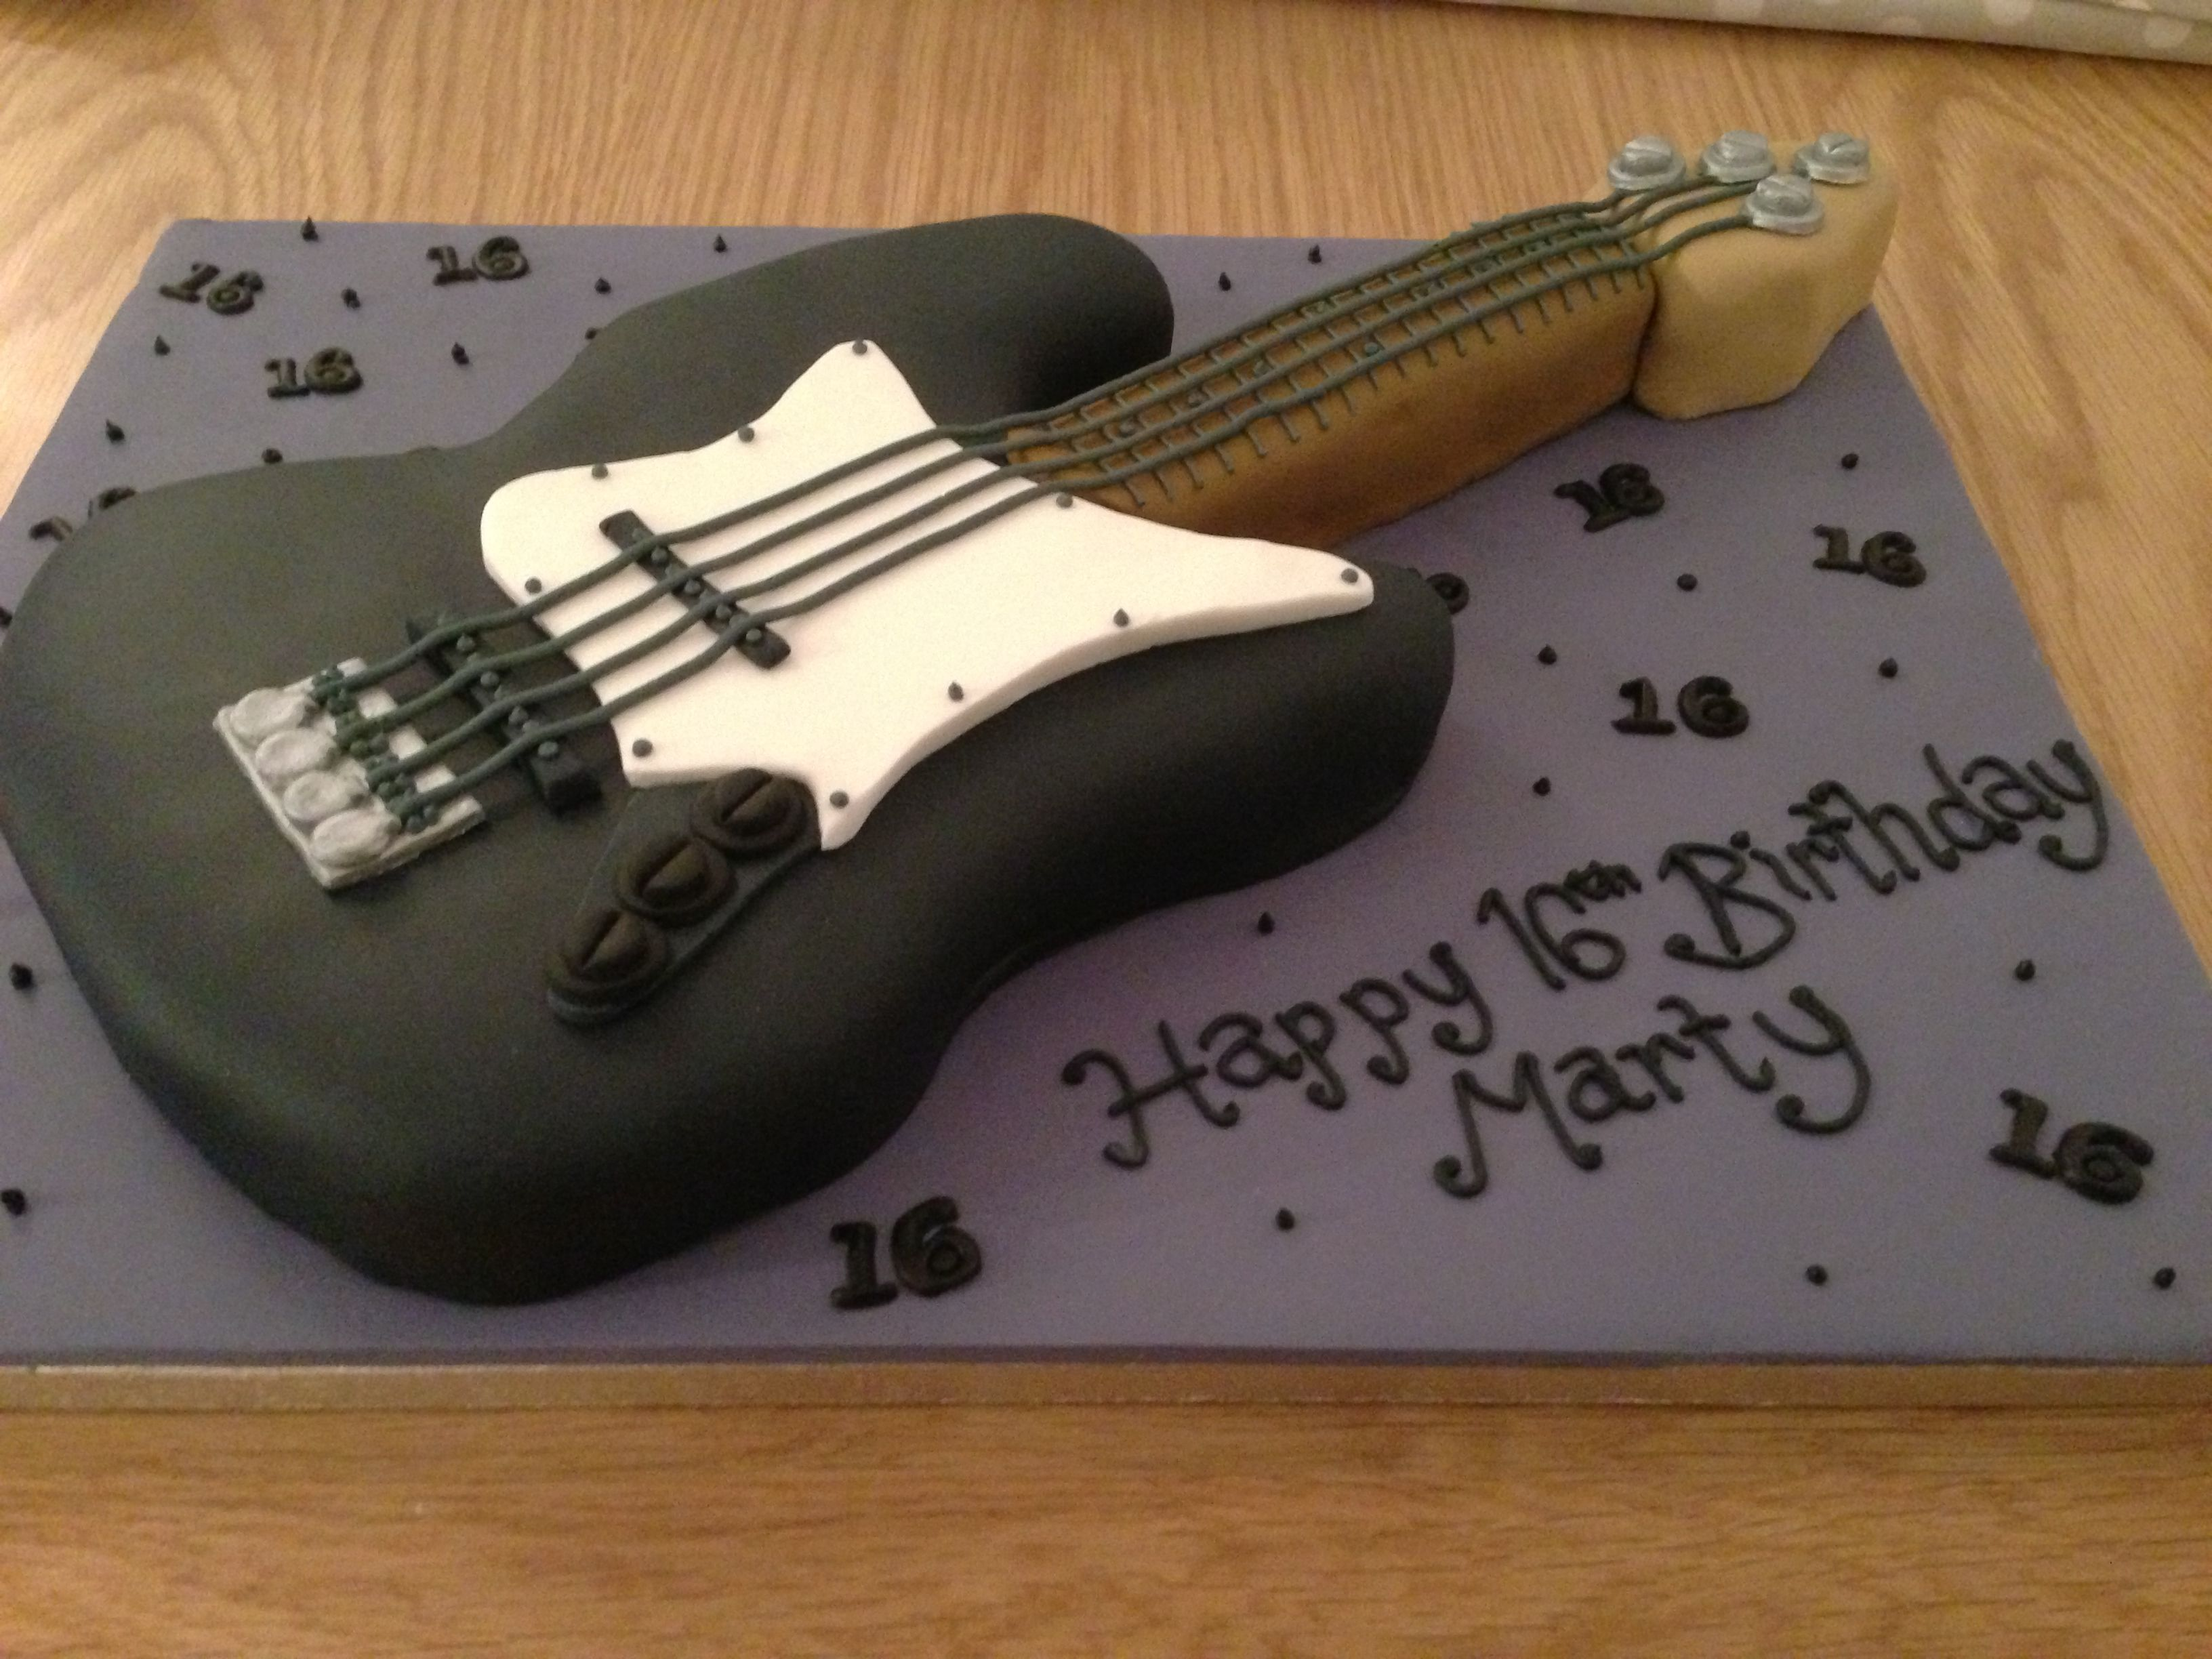 16th birthday guitar shaped cake for the hubby. Black Bedroom Furniture Sets. Home Design Ideas